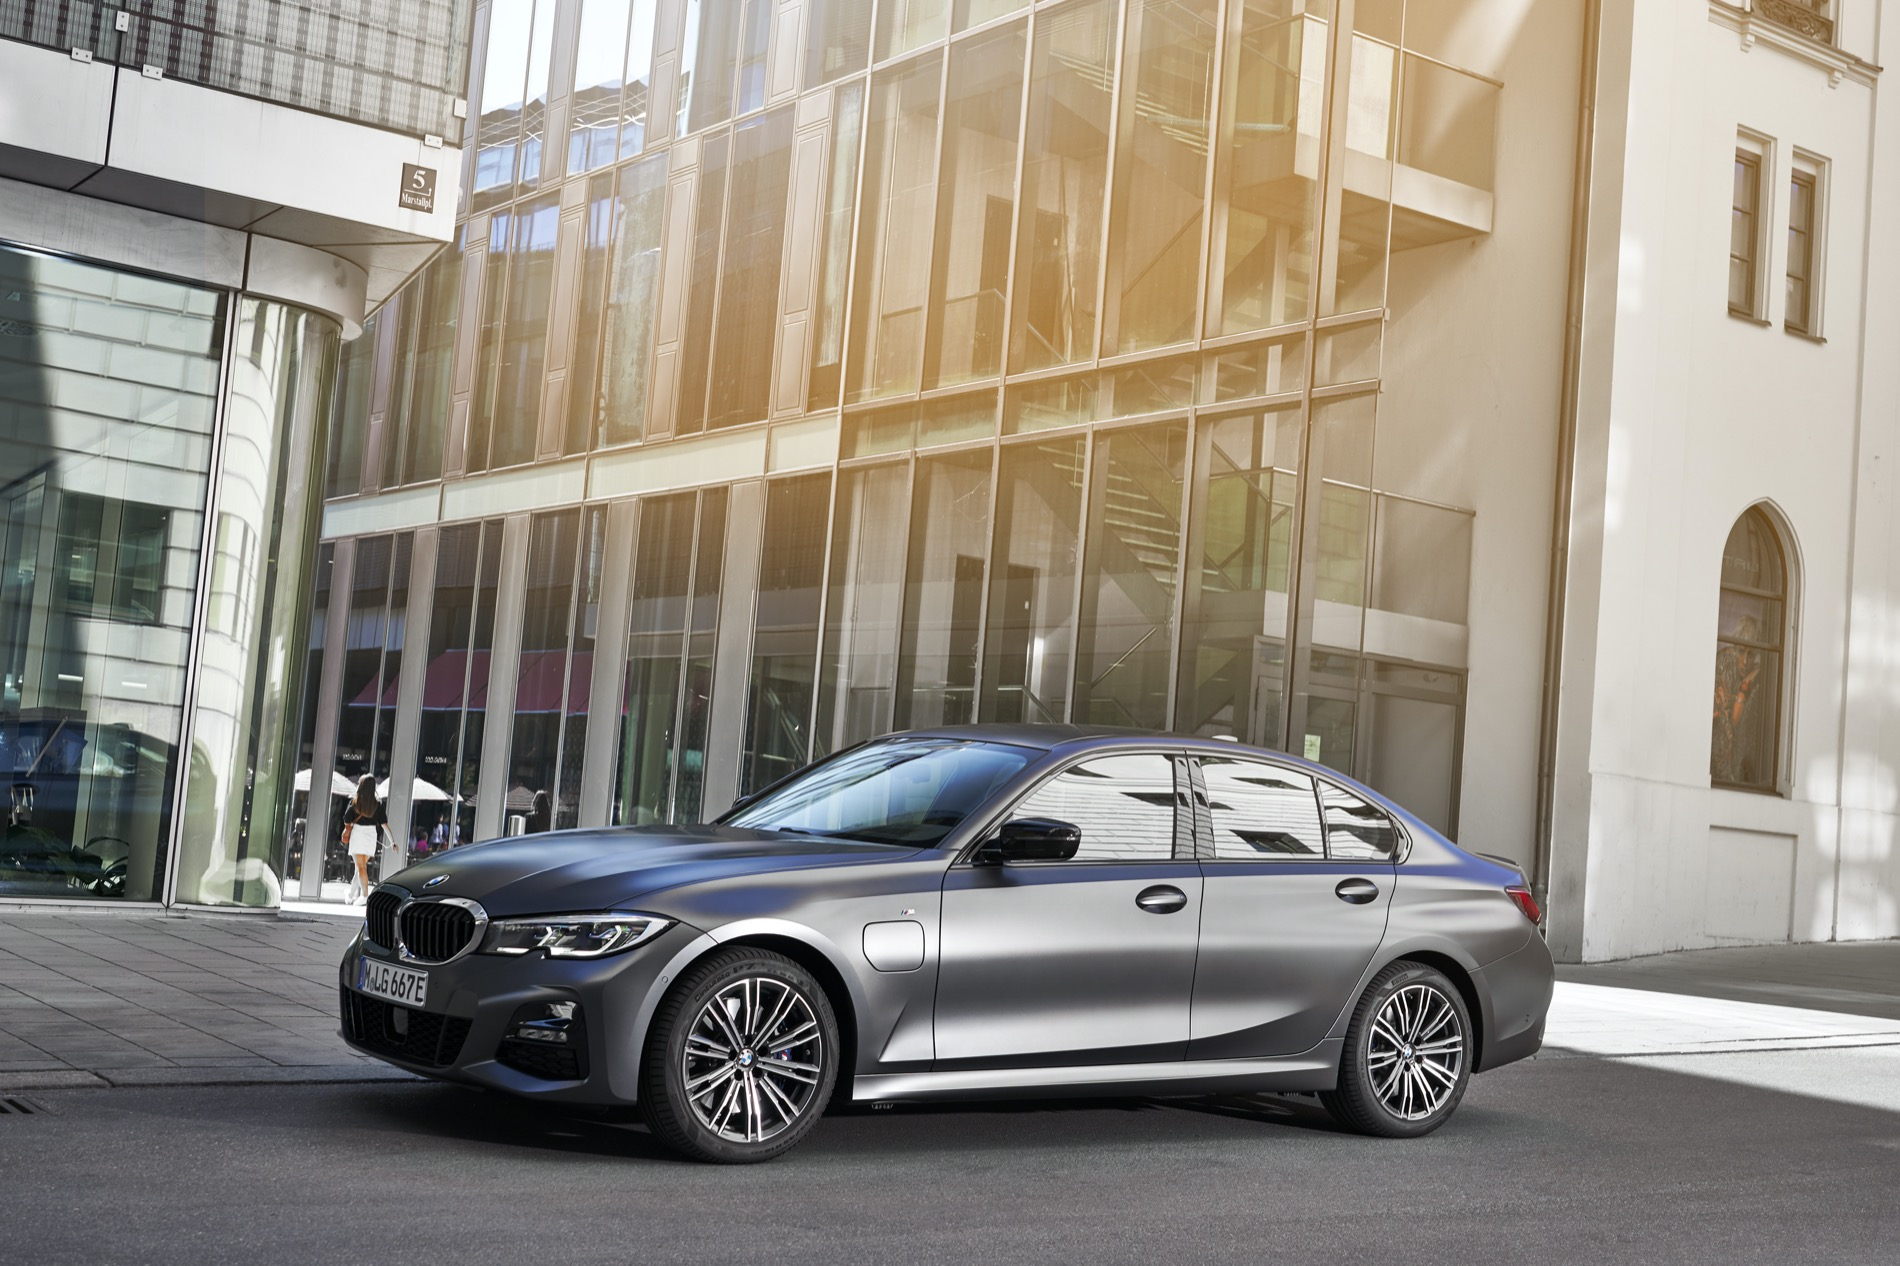 BMW_3_Series_Plug-in_Hybrid-007